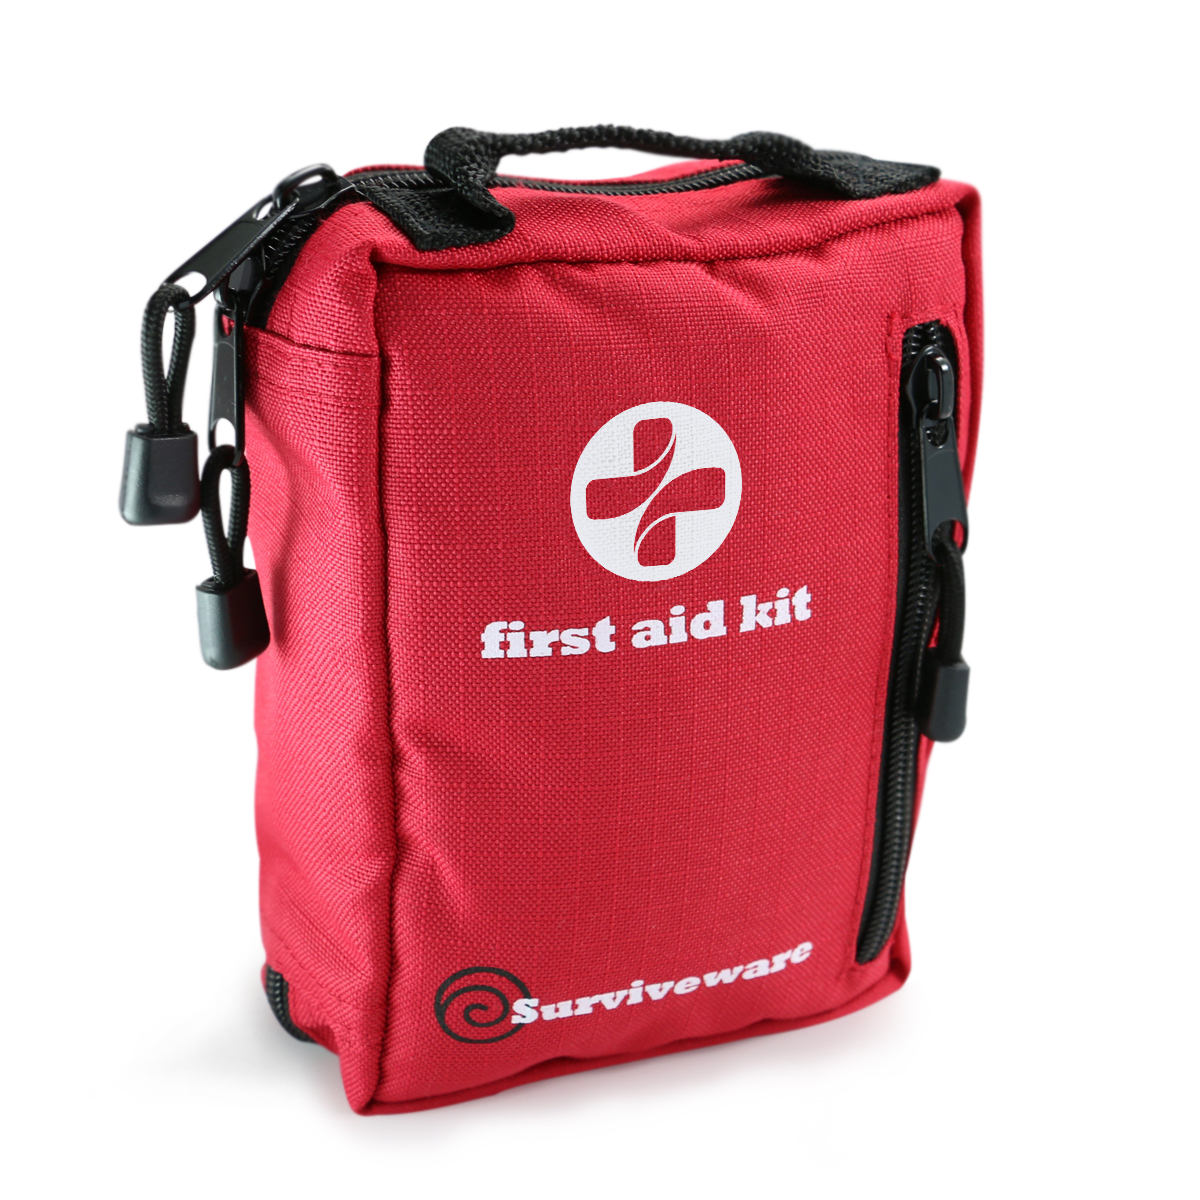 Surviveware Small First Aid Kit - Video Contest